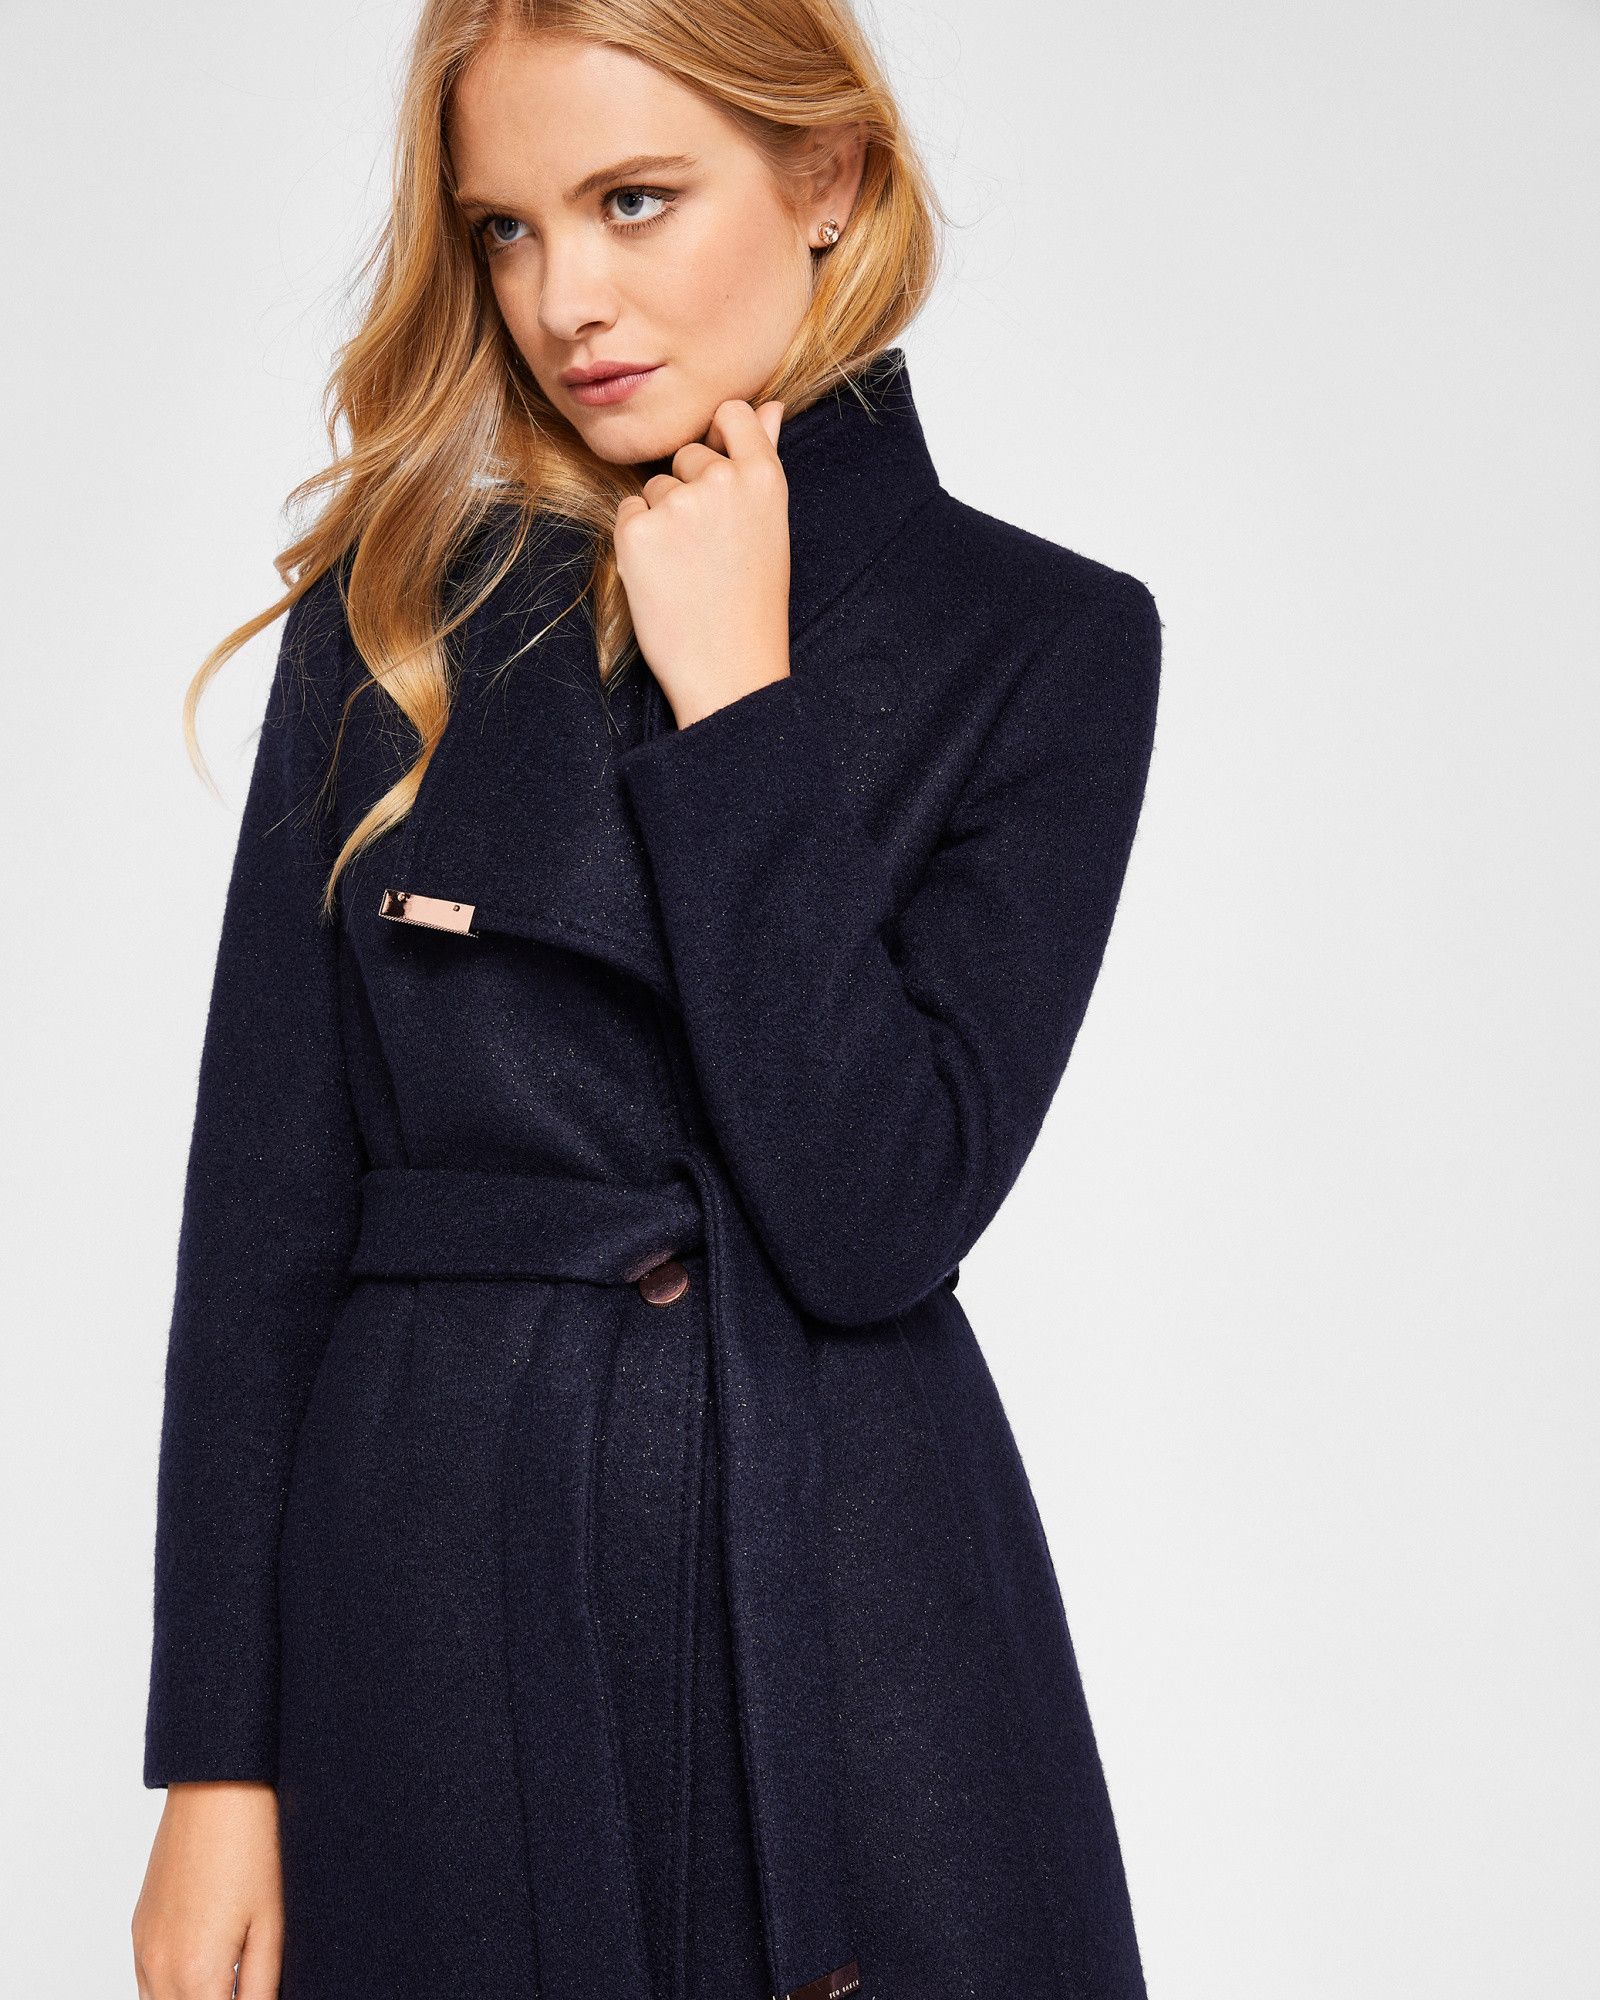 ad0564115 Ted Baker Boiled wool sparkle wrap coat Navy